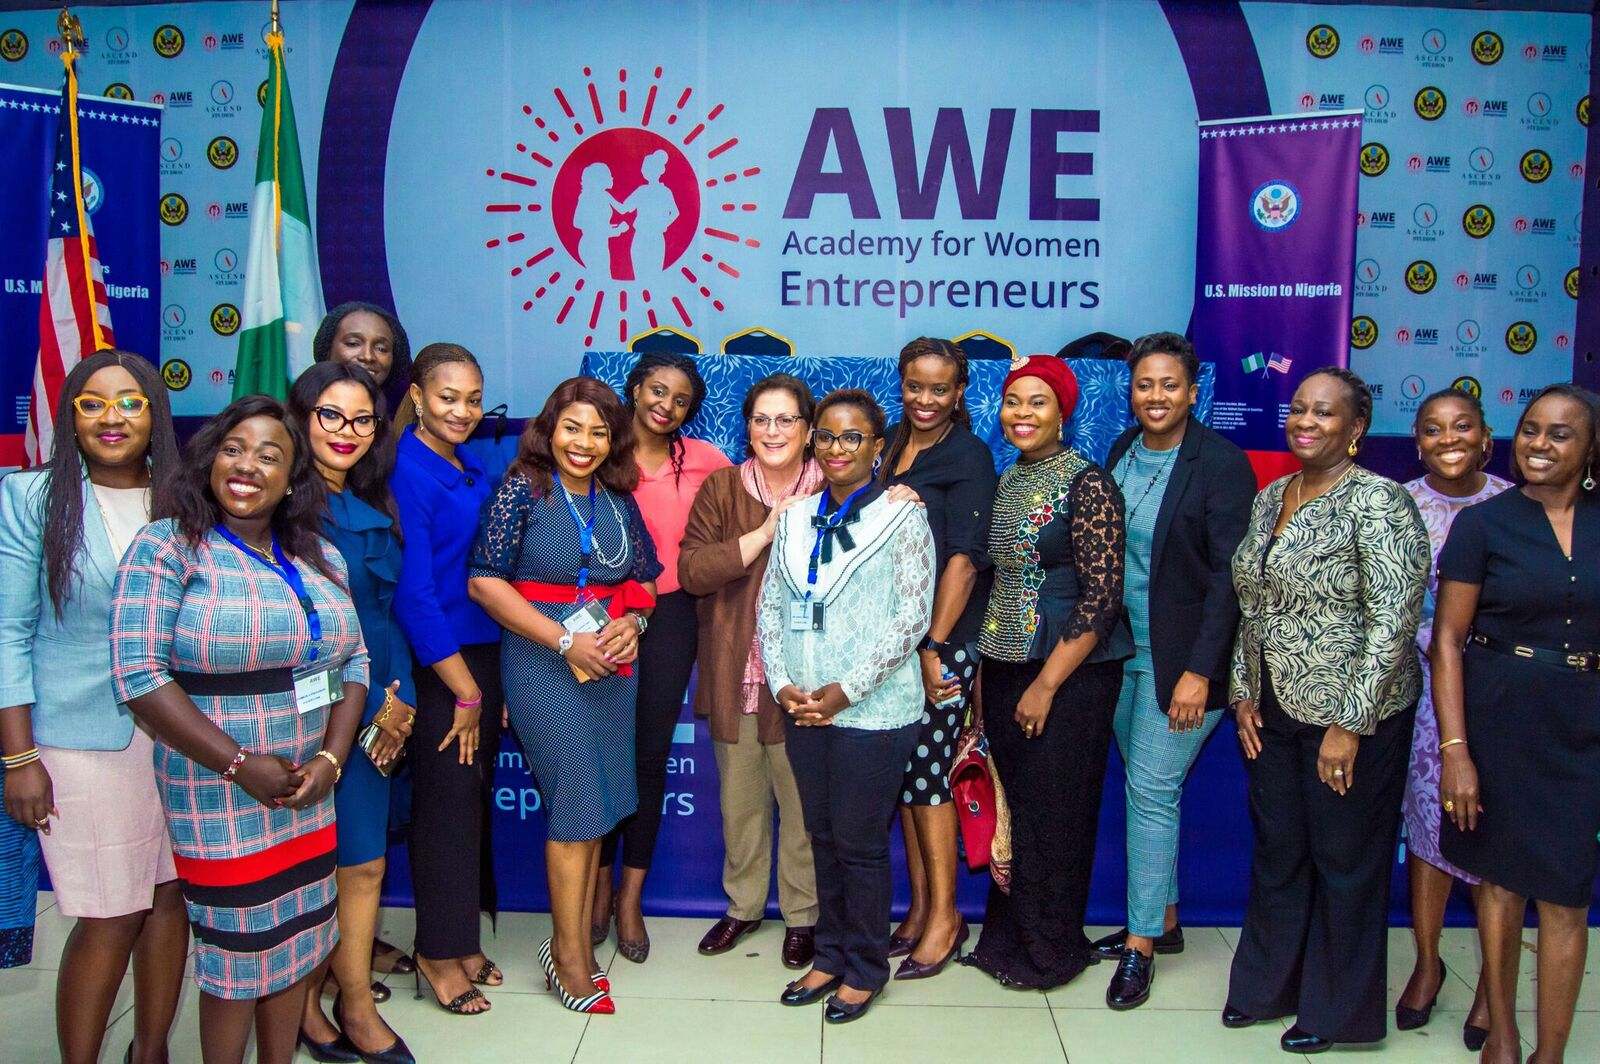 US Consulate General launches The Academy for Women Entrepreneurs (AWE) Initiative